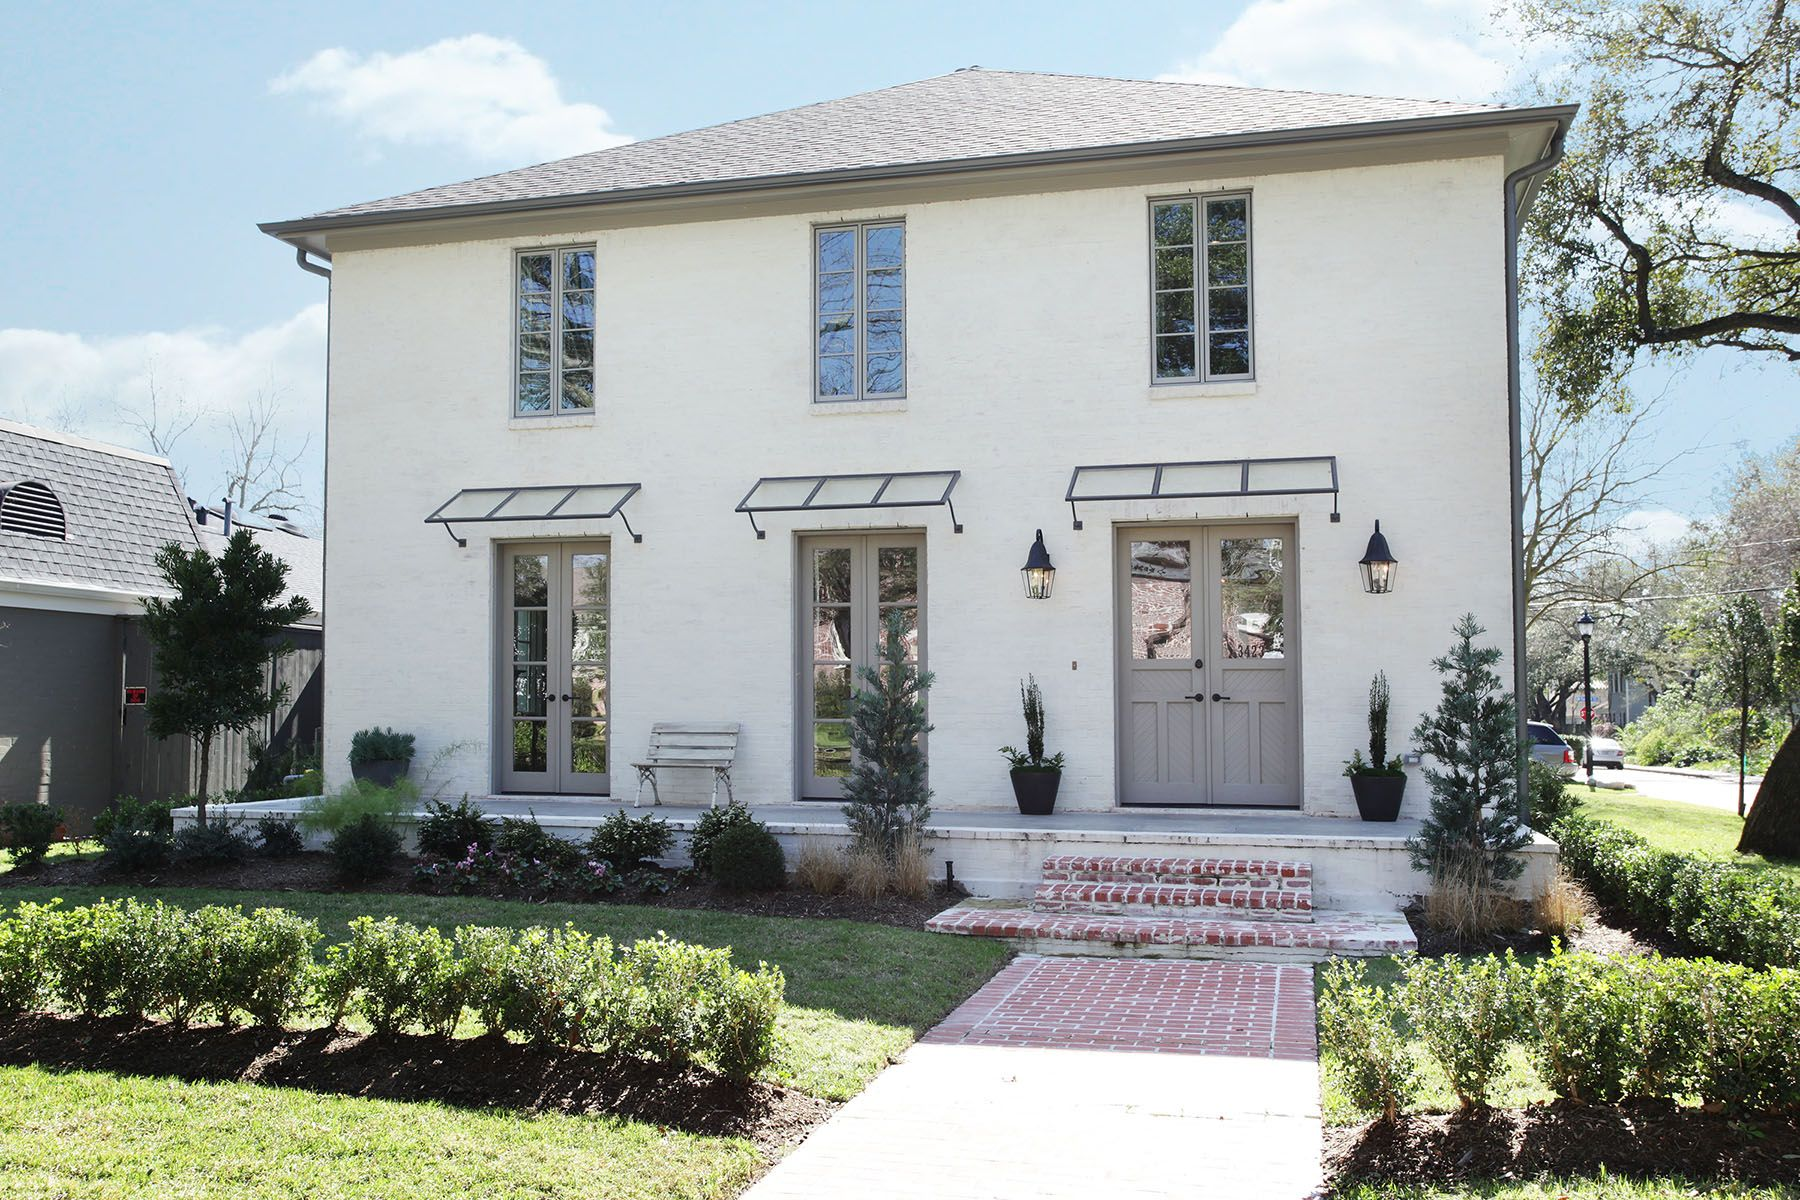 White brick gray trim door Home Exteriors Pinterest